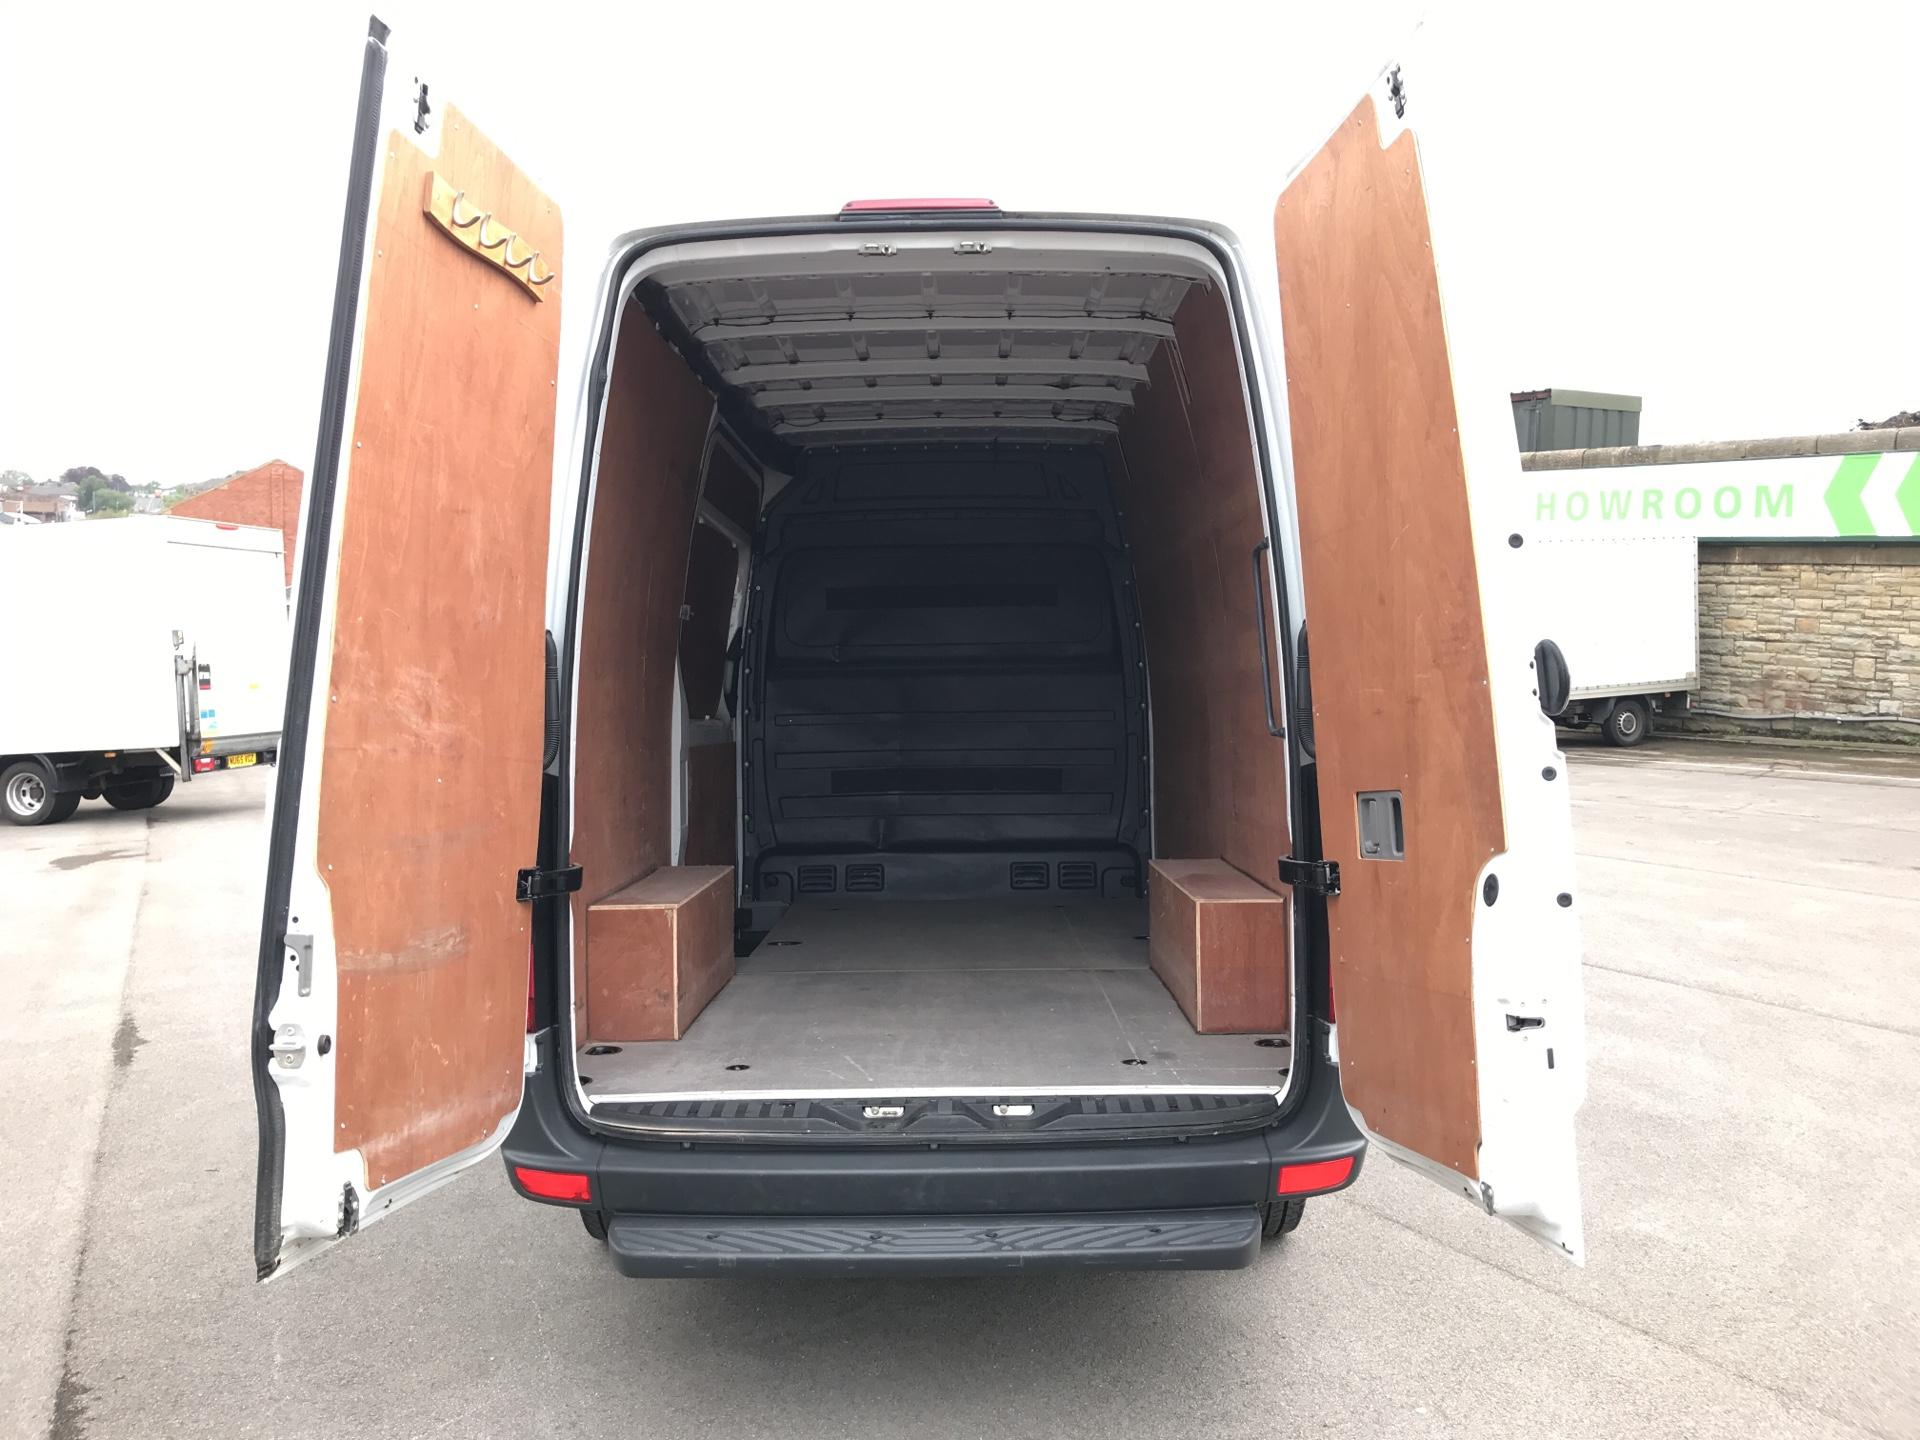 2017 Mercedes-Benz Sprinter 3.5T High Roof Van MWB (KN17BVK) Thumbnail 20